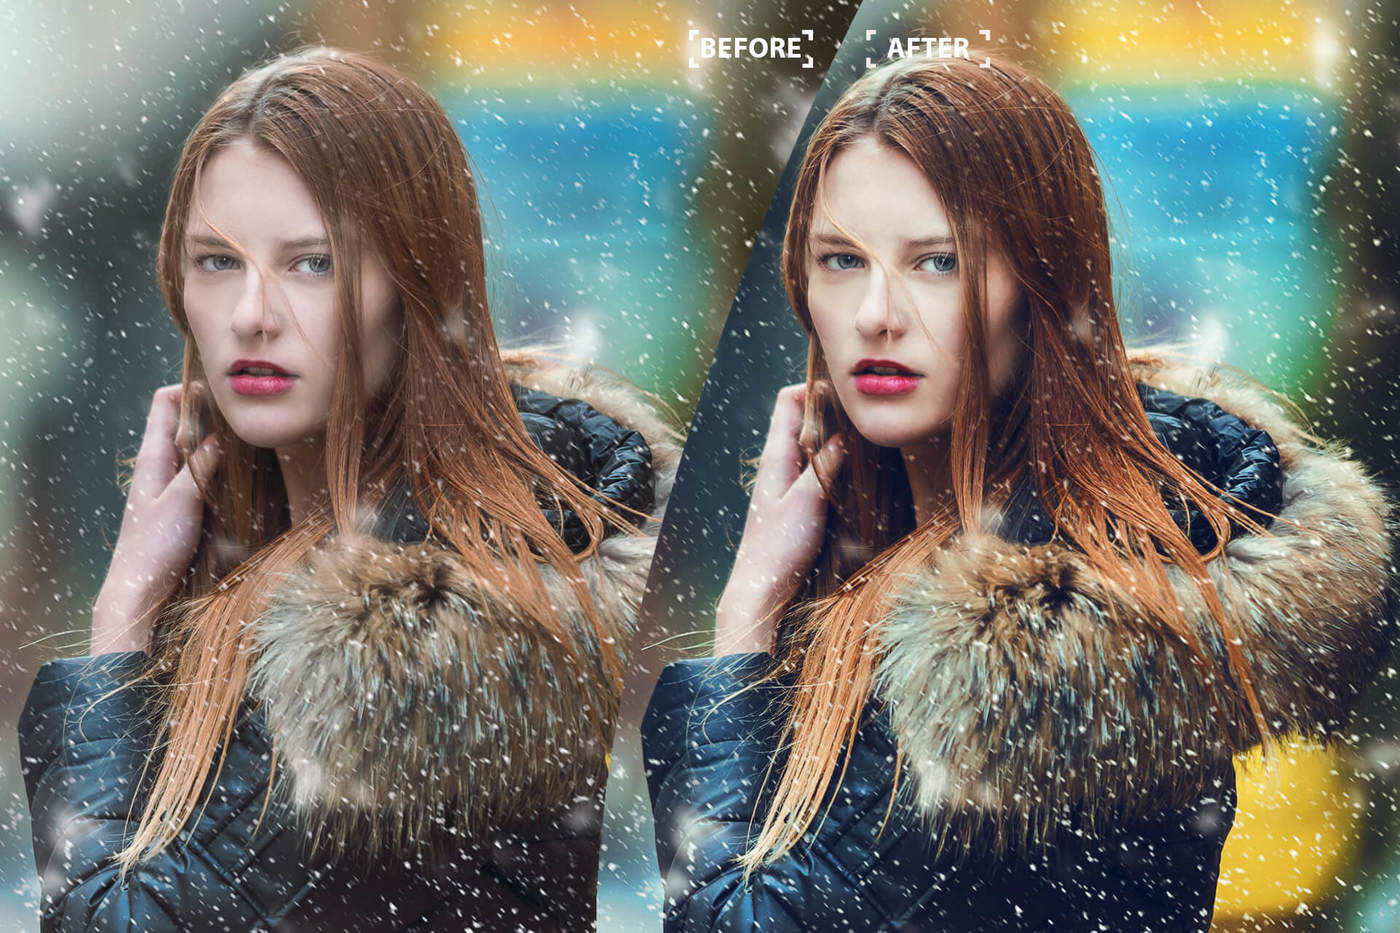 Cinematic Color Grading 04 Premium photoshop actions By 3Motional